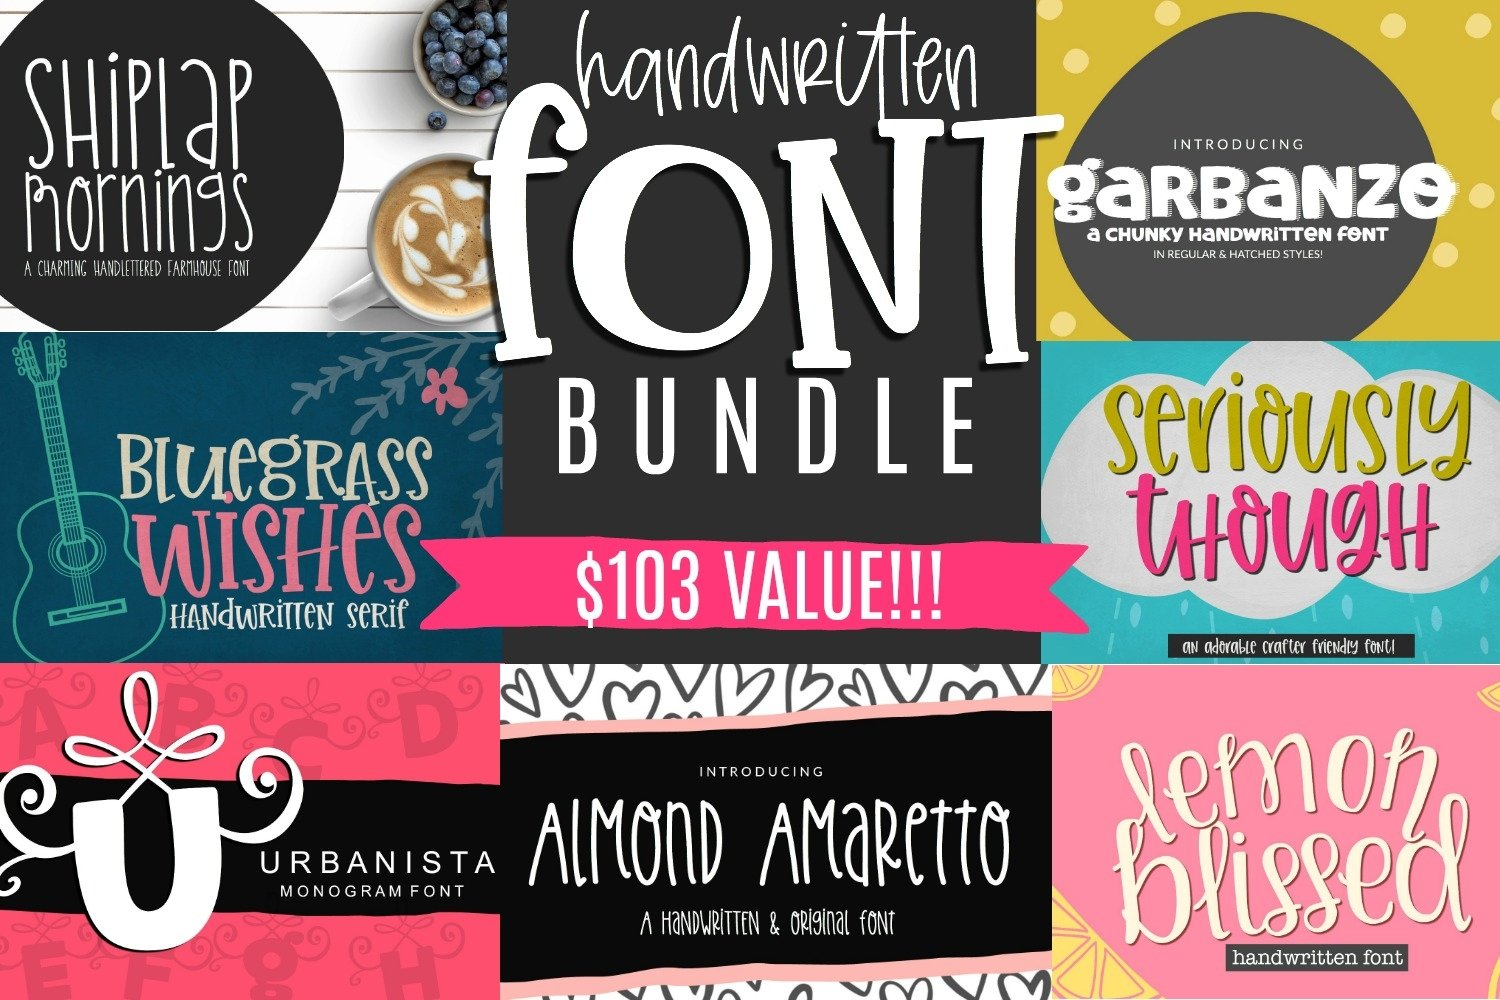 Crafter Handwritten Font Bundle- 7 Smooth Cuttable Fonts example image 1